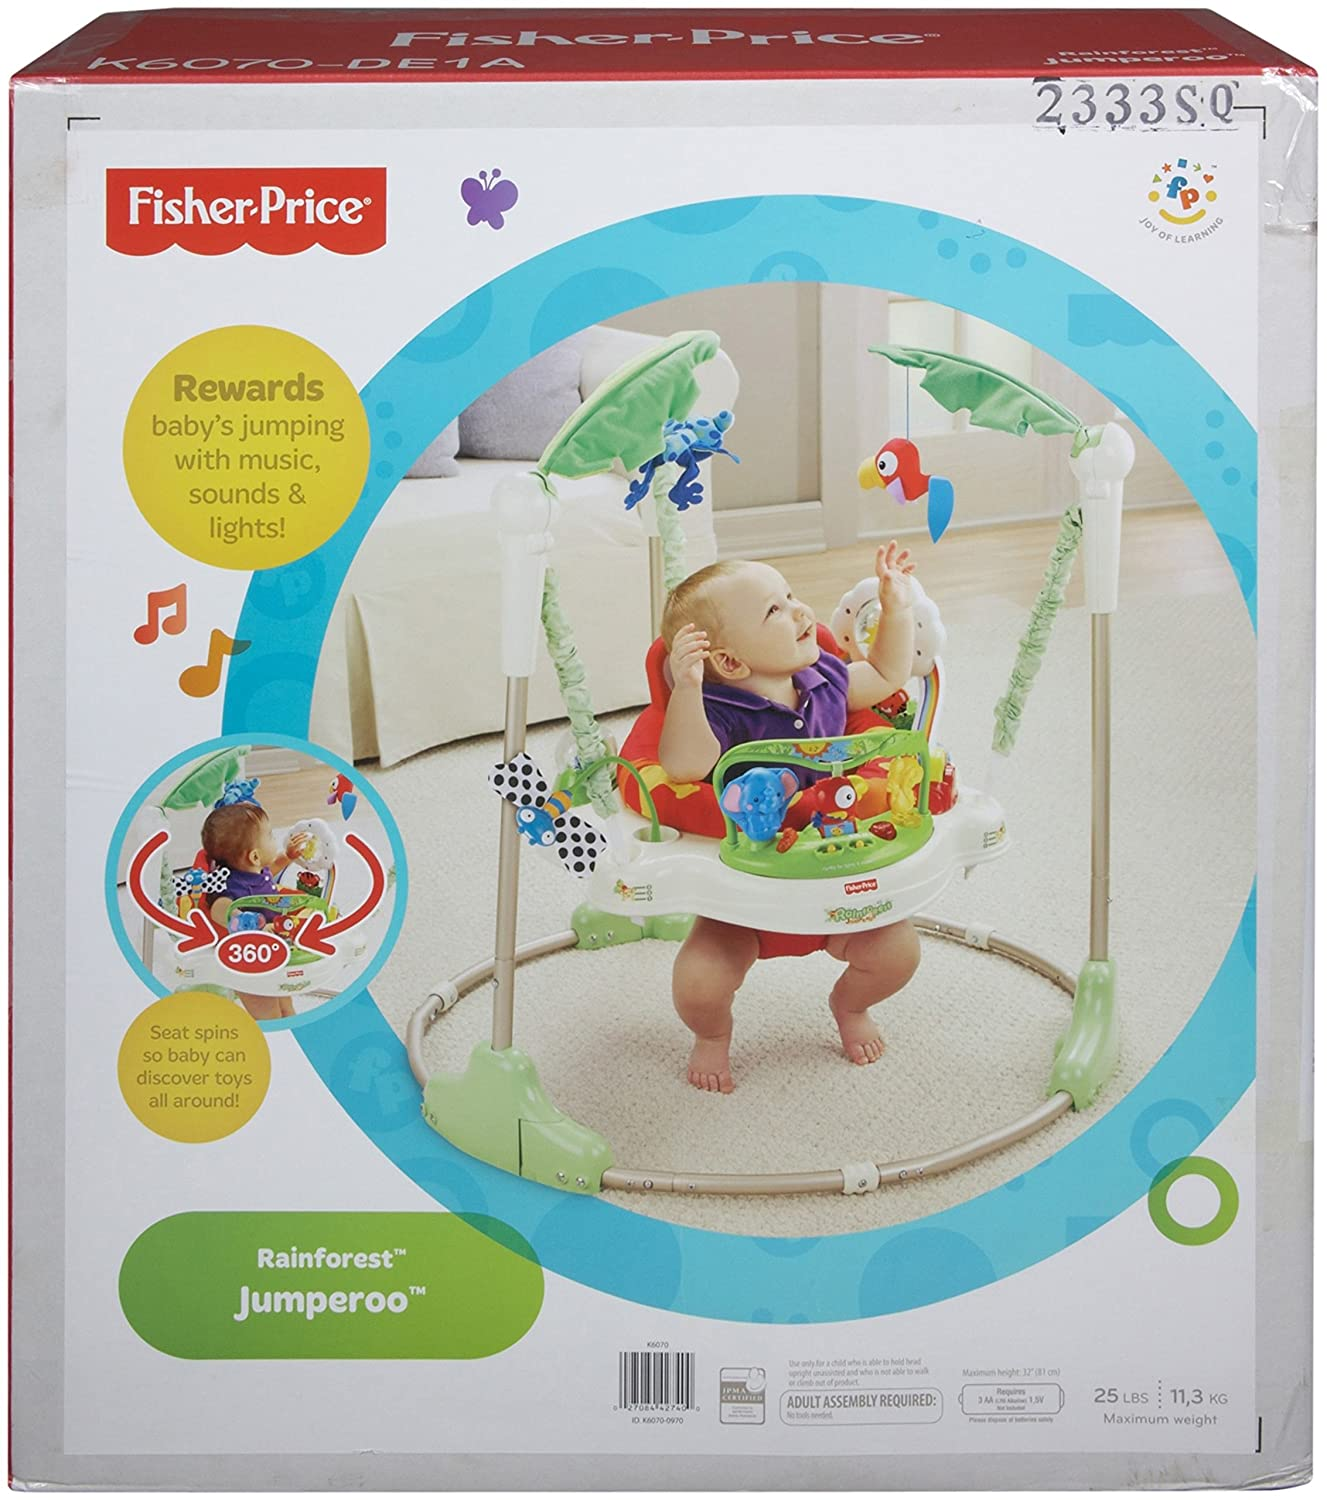 b2c0eedff Amazon.com   Fisher-Price Rainforest Jumperoo   Infant Bouncers And ...